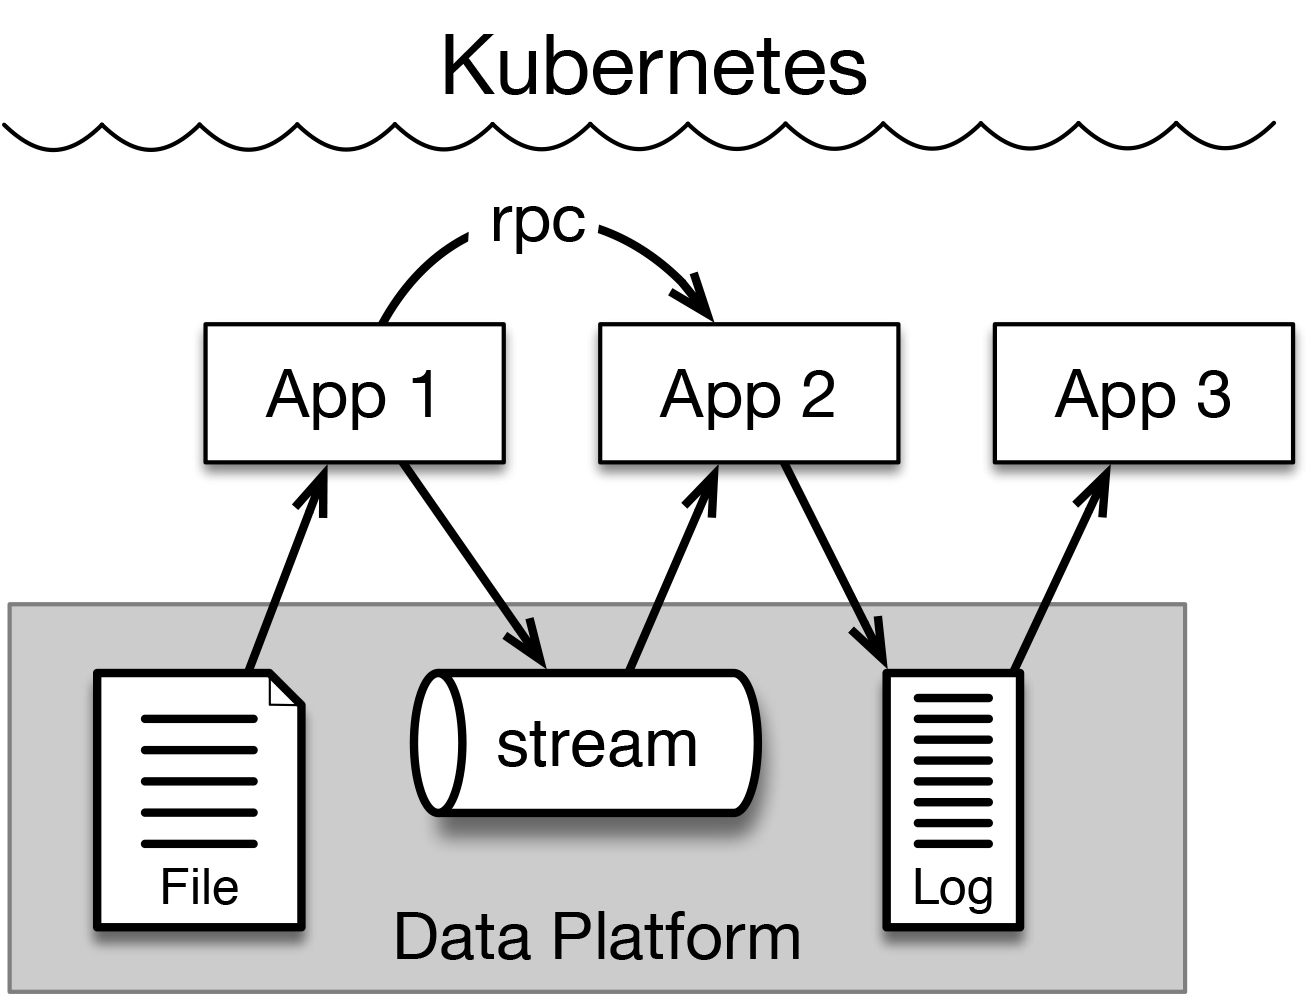 applications would be able to communicate state by persisting data